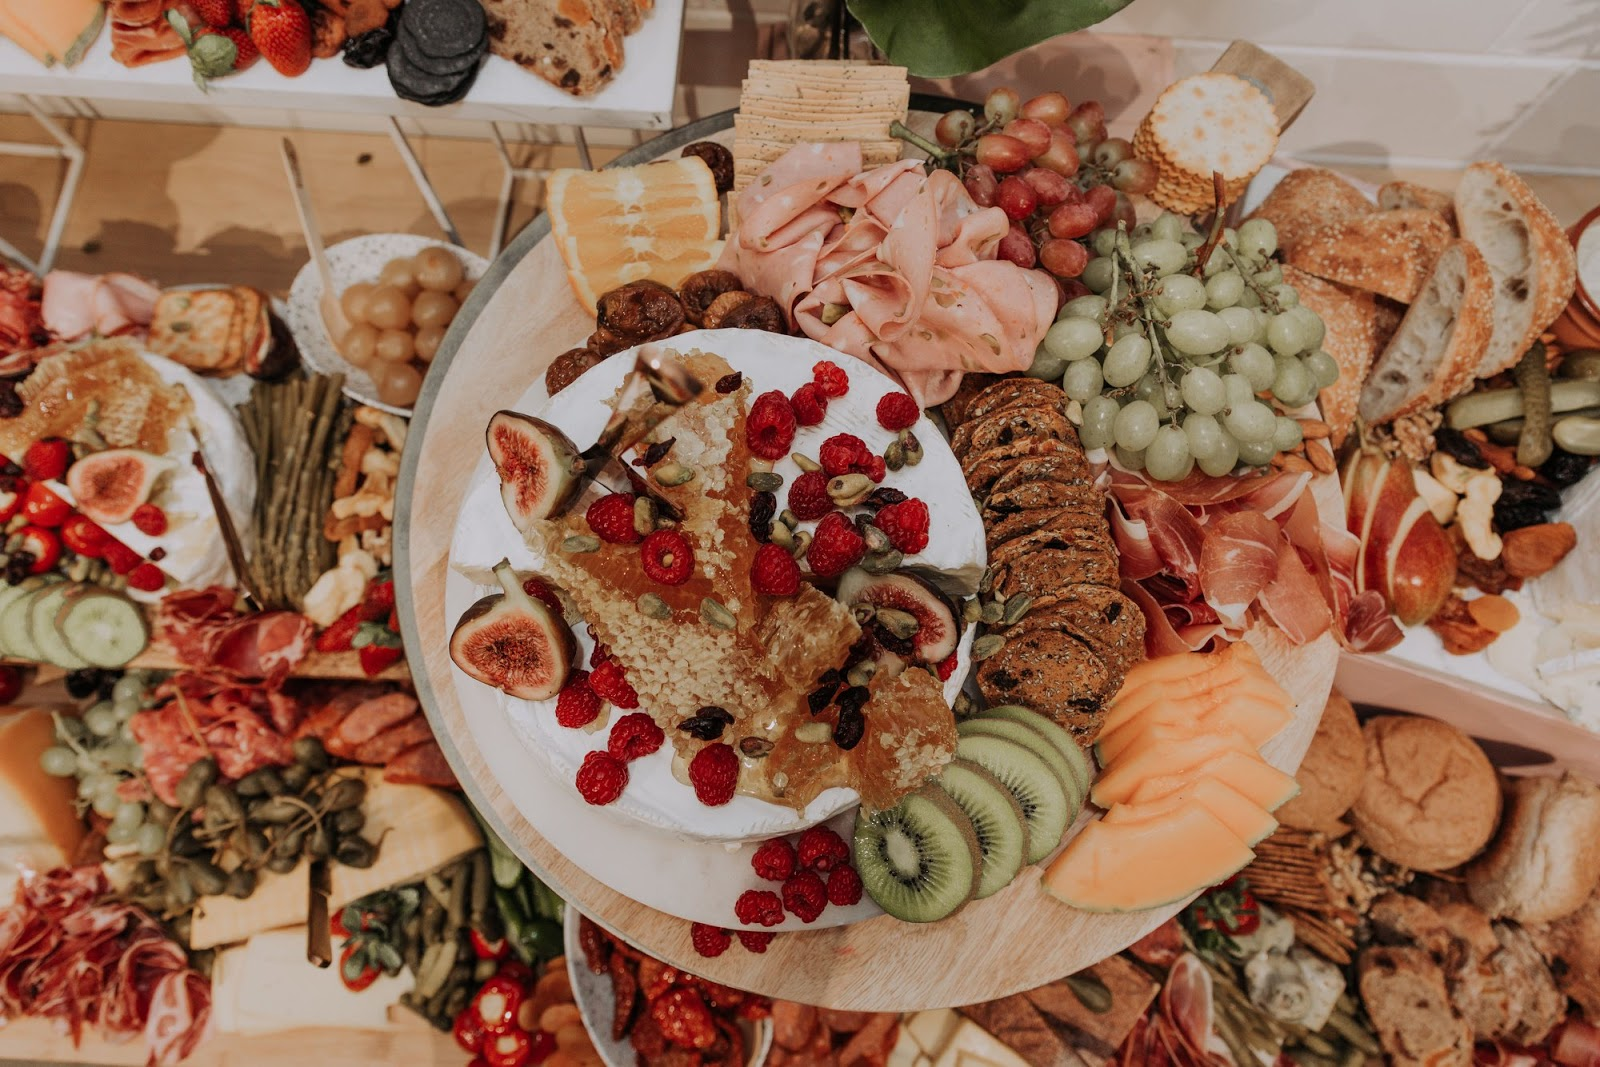 carnival creations wedding grazing tables platters boards food catering